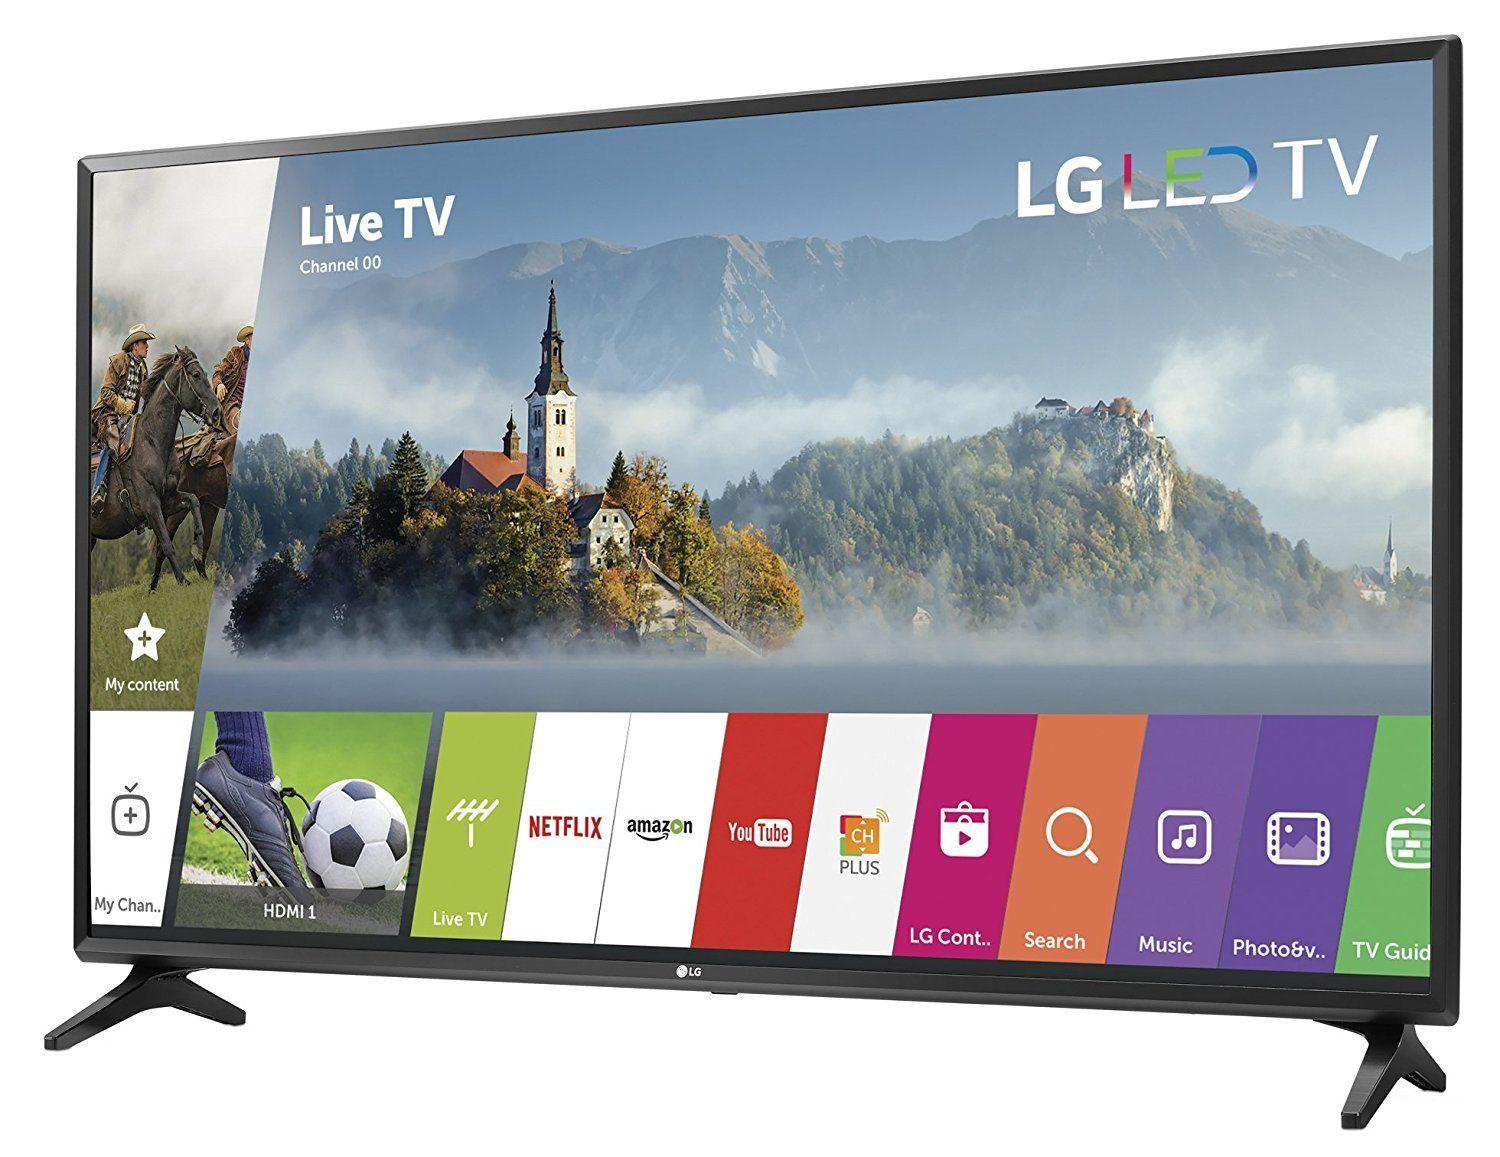 New LG 43 Inch Full HD 1080p Smart LED TV HDTV webOS 3.5 2x HDMI USB 43LJ5500